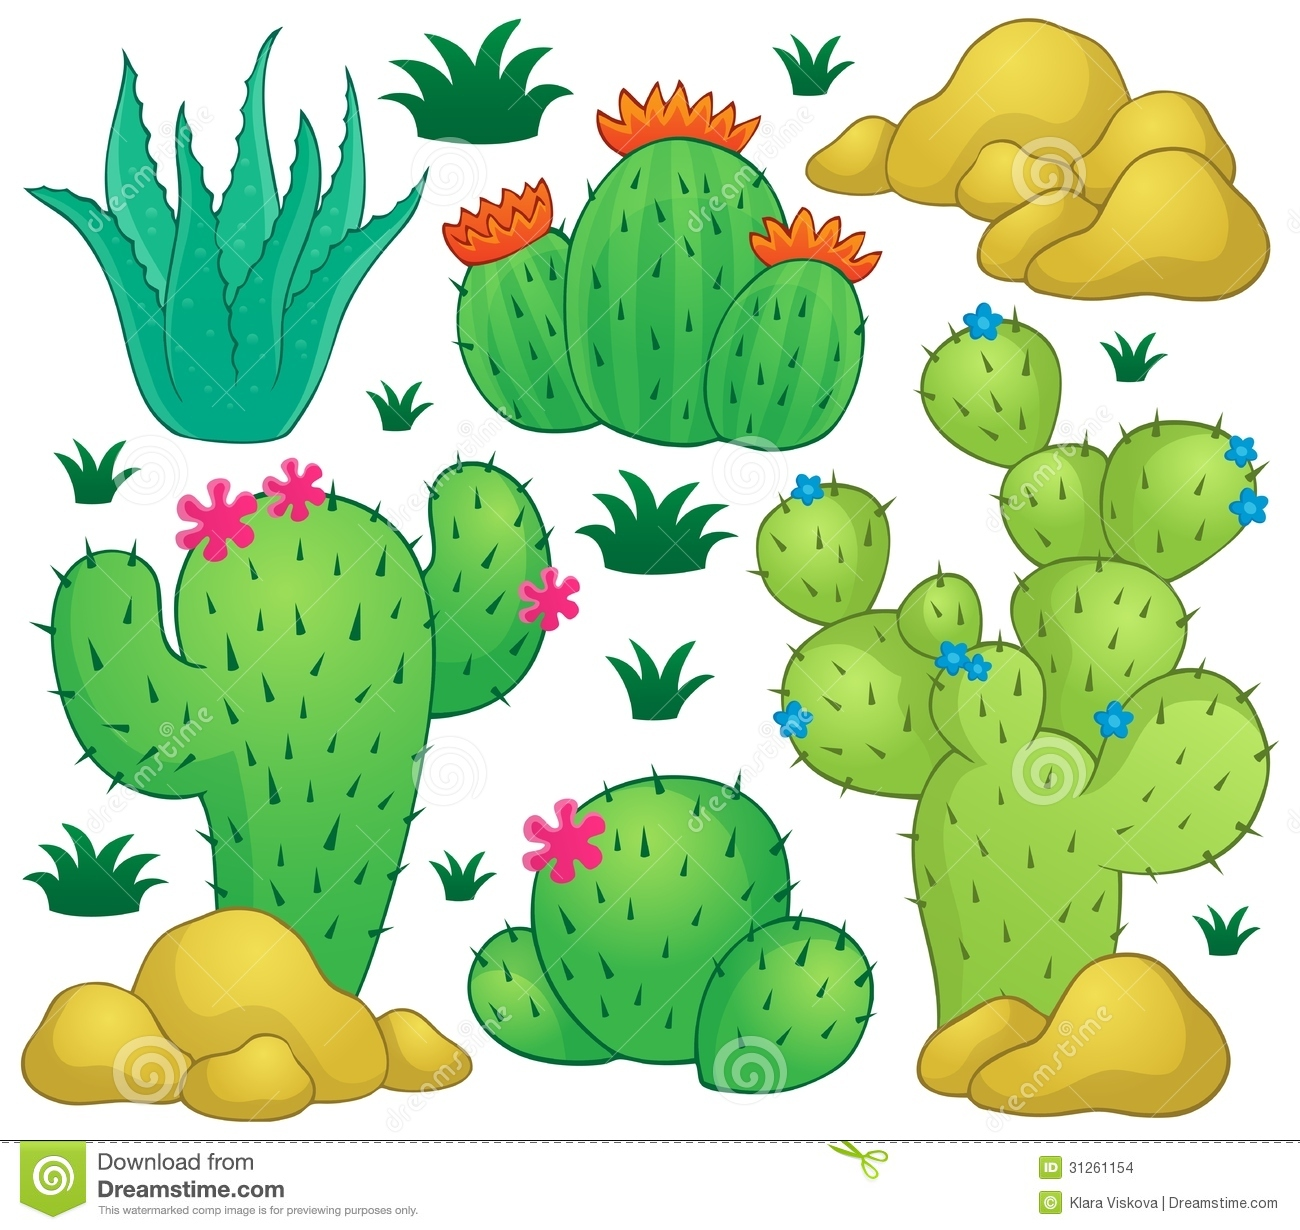 Cactus Theme Image 1 Stock Vector. Image Of Cartoon, Bloom